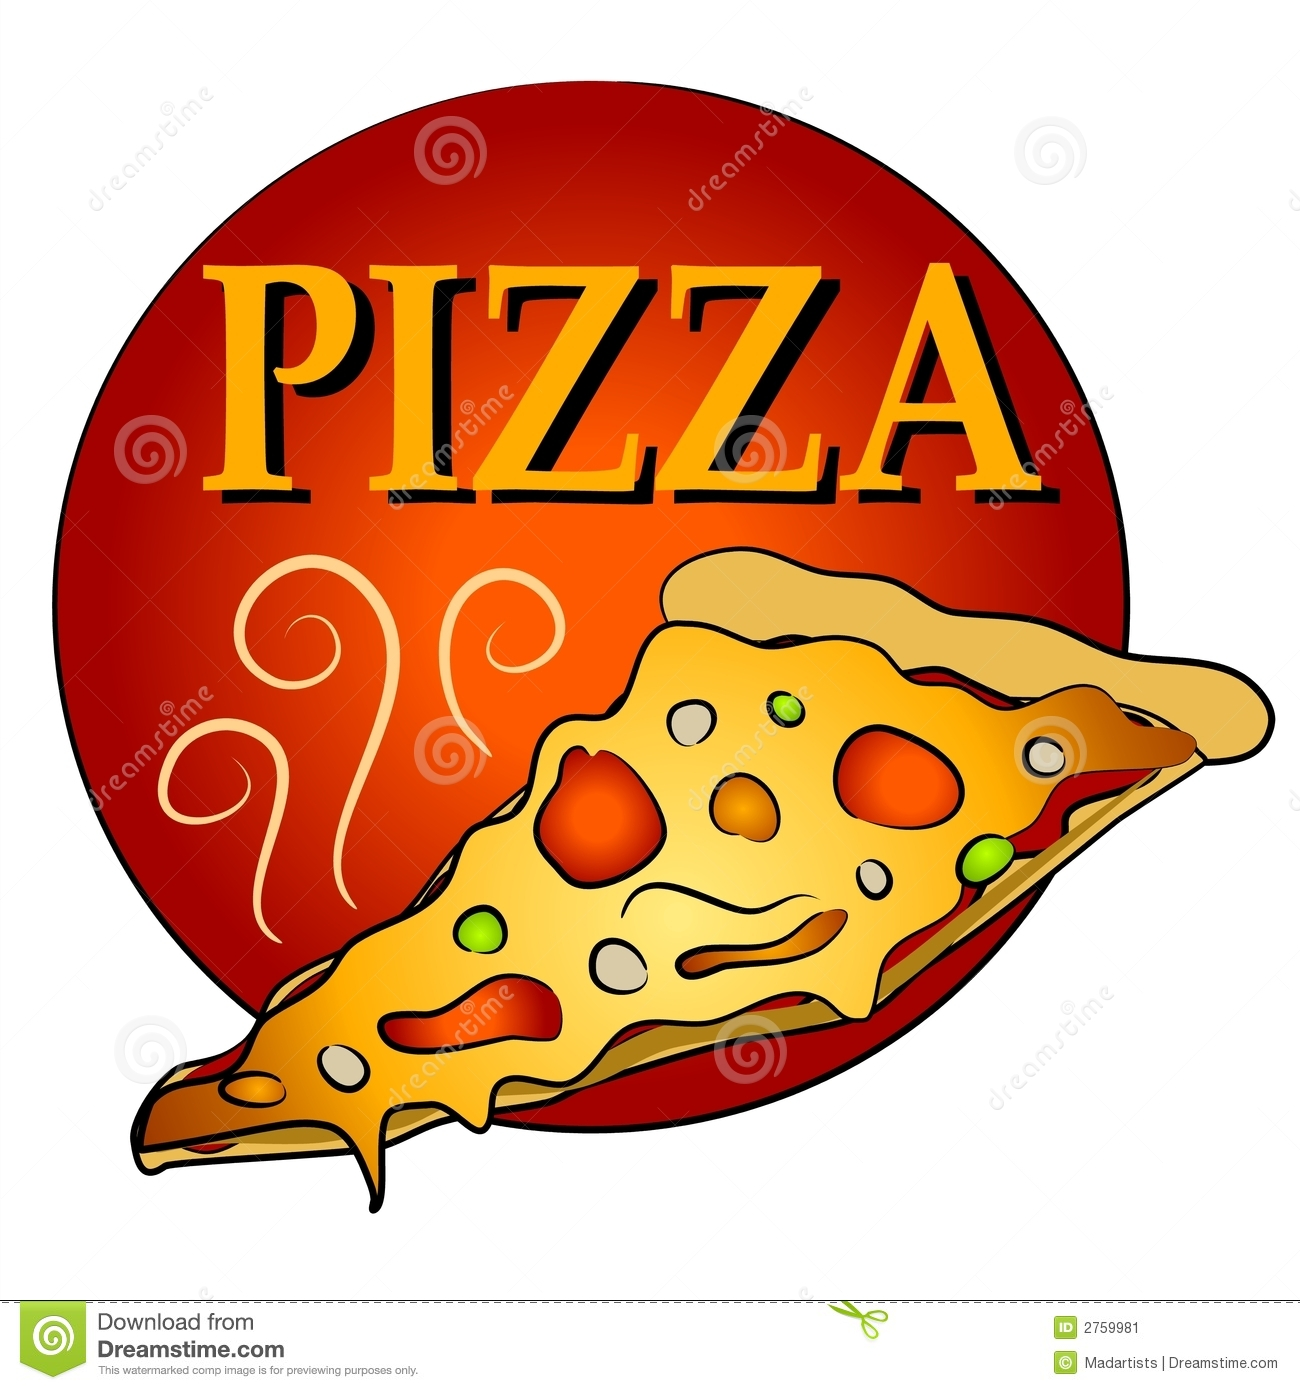 Pizza artwork clipart graphic free stock Pizza artwork clipart - ClipartFest graphic free stock